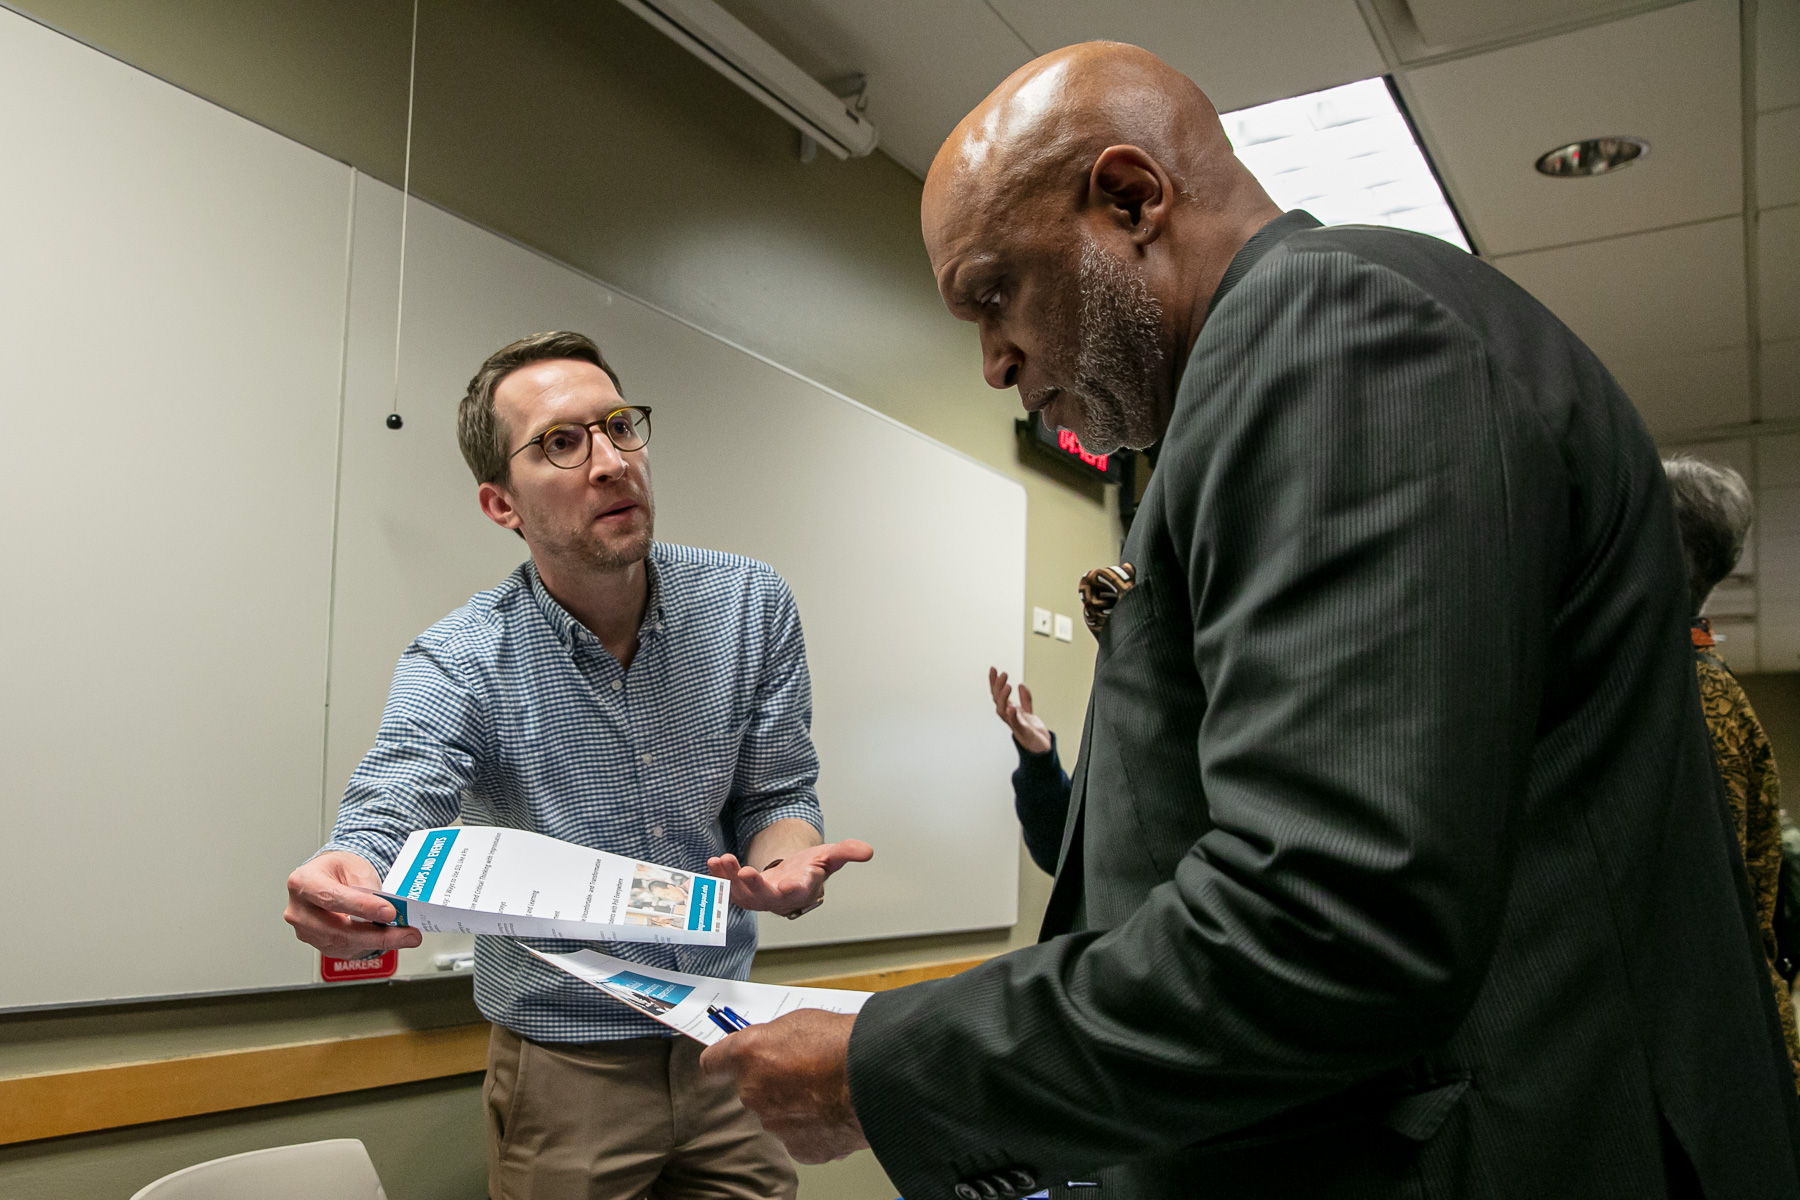 Daniel Stanford, director of faculty development in the Center for Teaching and Learning, presents information regarding teaching development seminars to adjunct faculty. (DePaul University/Randall Spriggs)